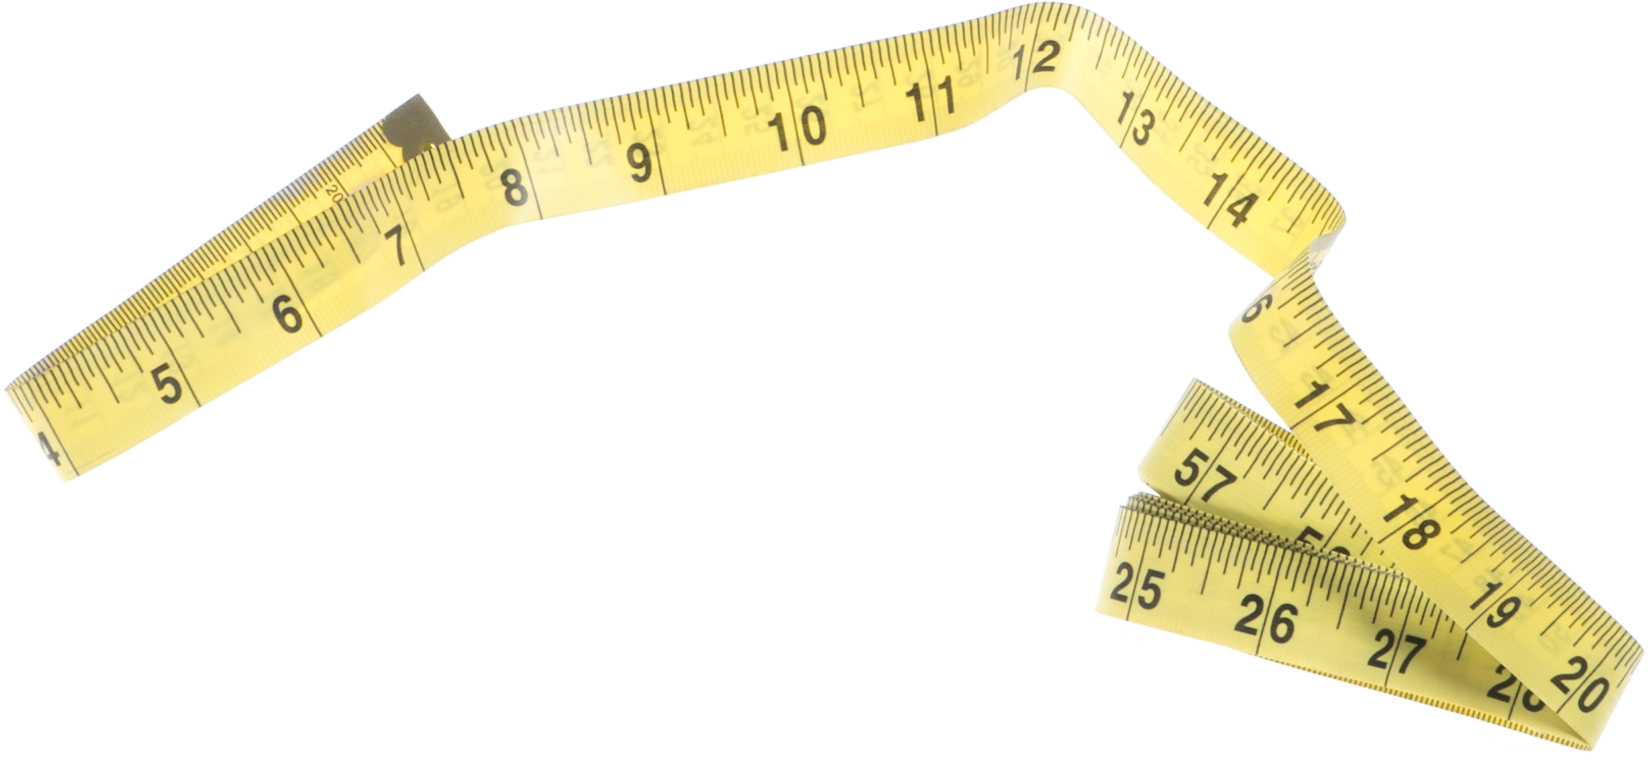 A photo of a yellow measuring tape